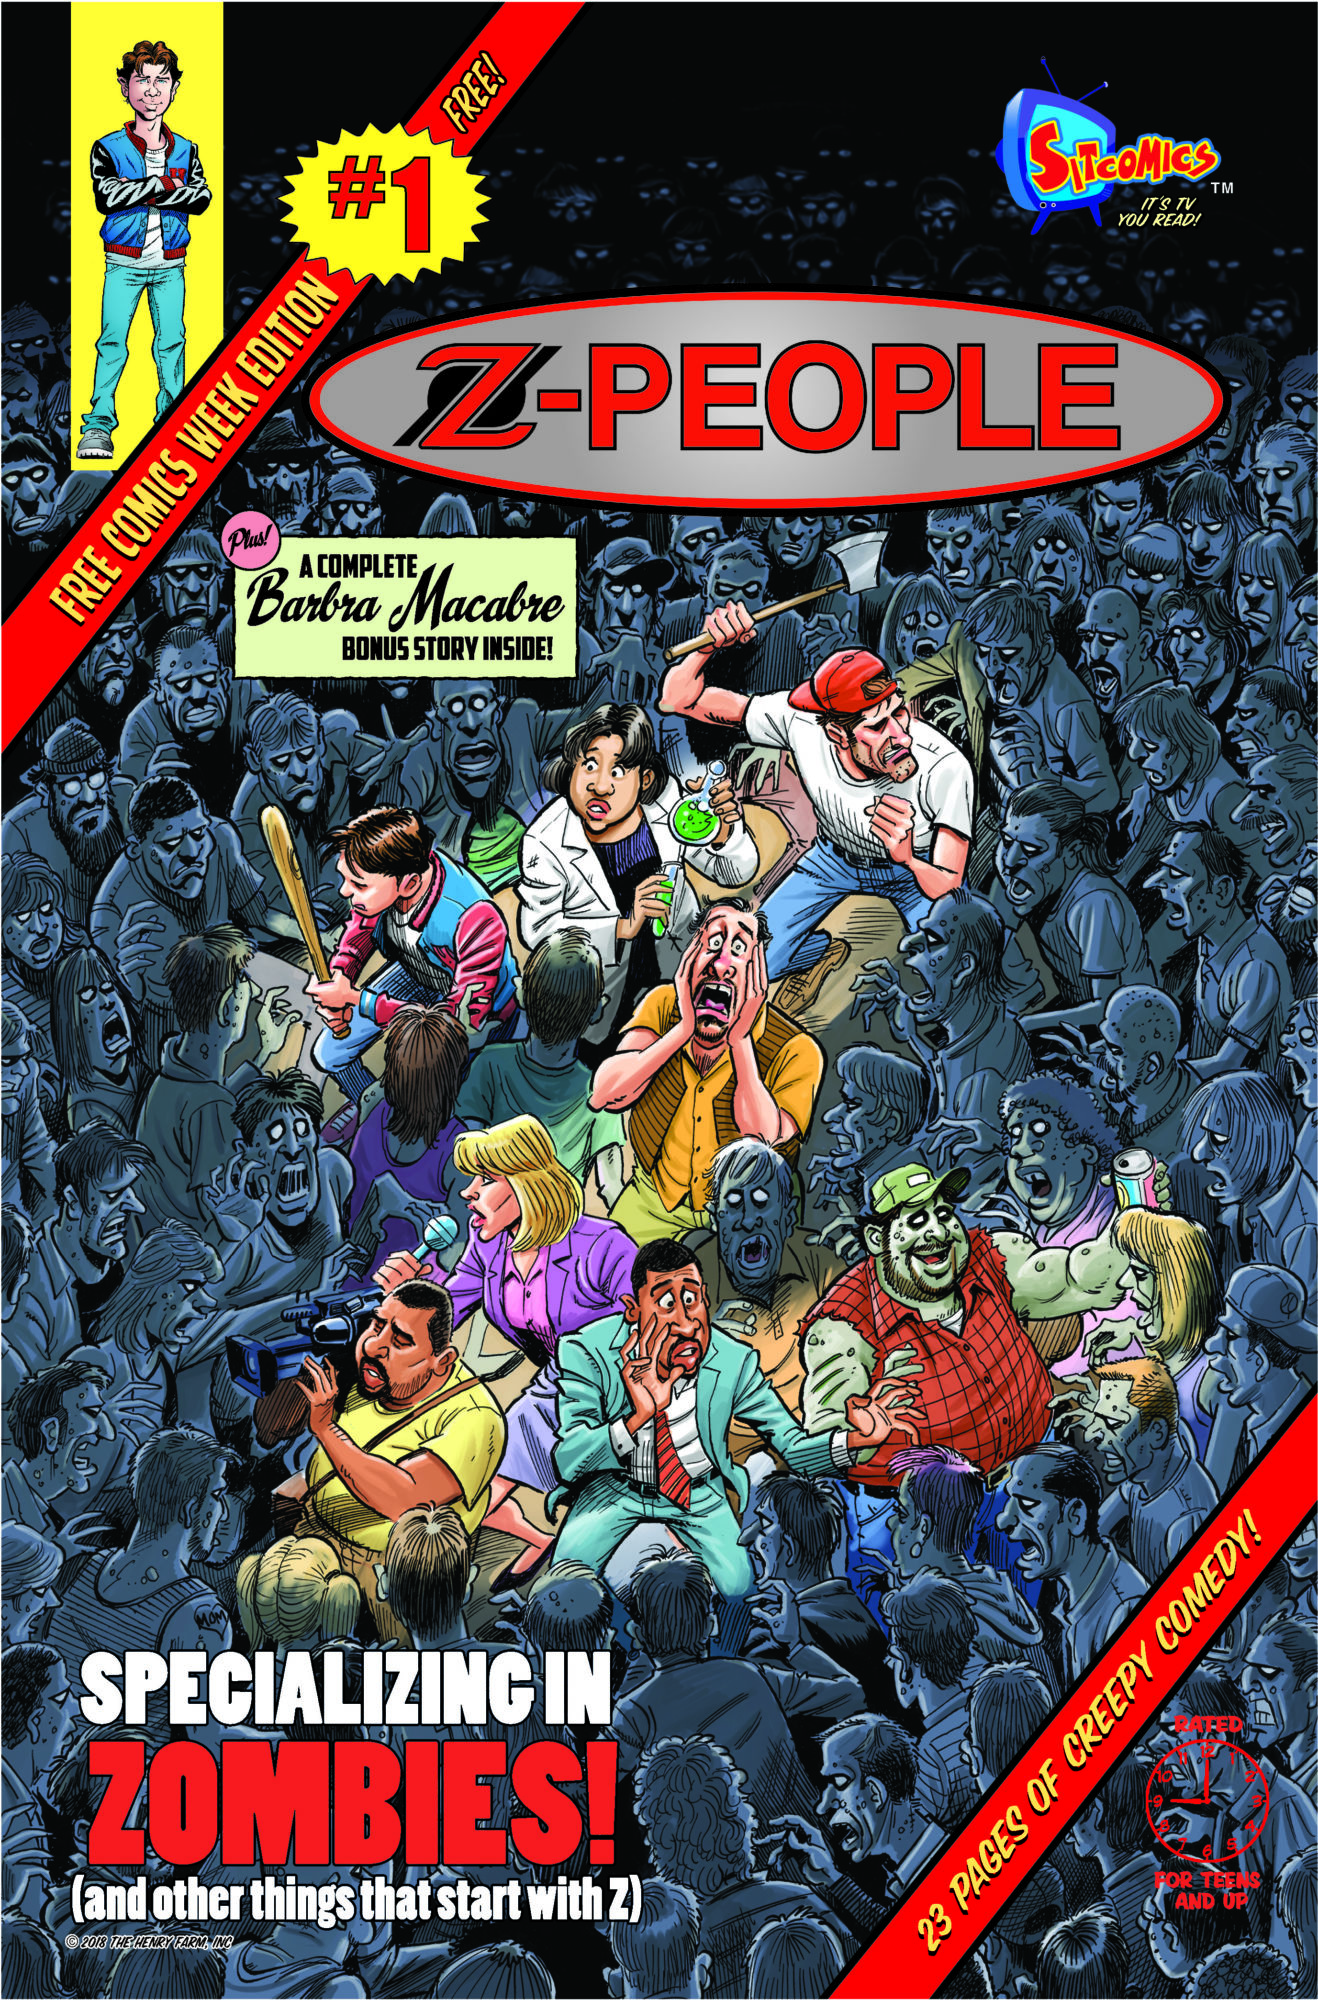 24-page preview of z-people #1, another of sitcomics' 64-page $3.99